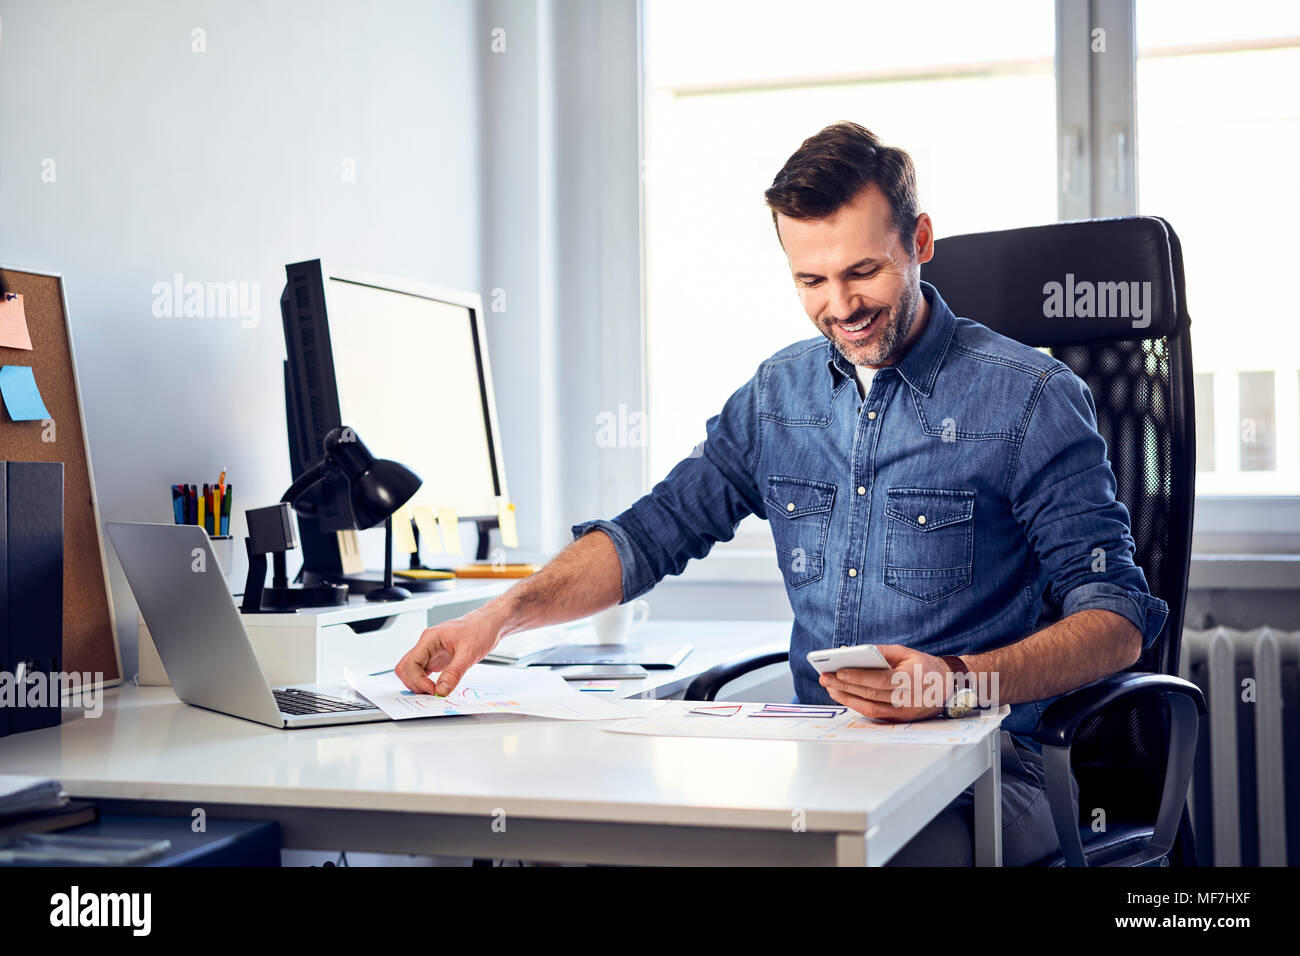 Smiling man with smartphone et projet de working at desk in office Photo Stock